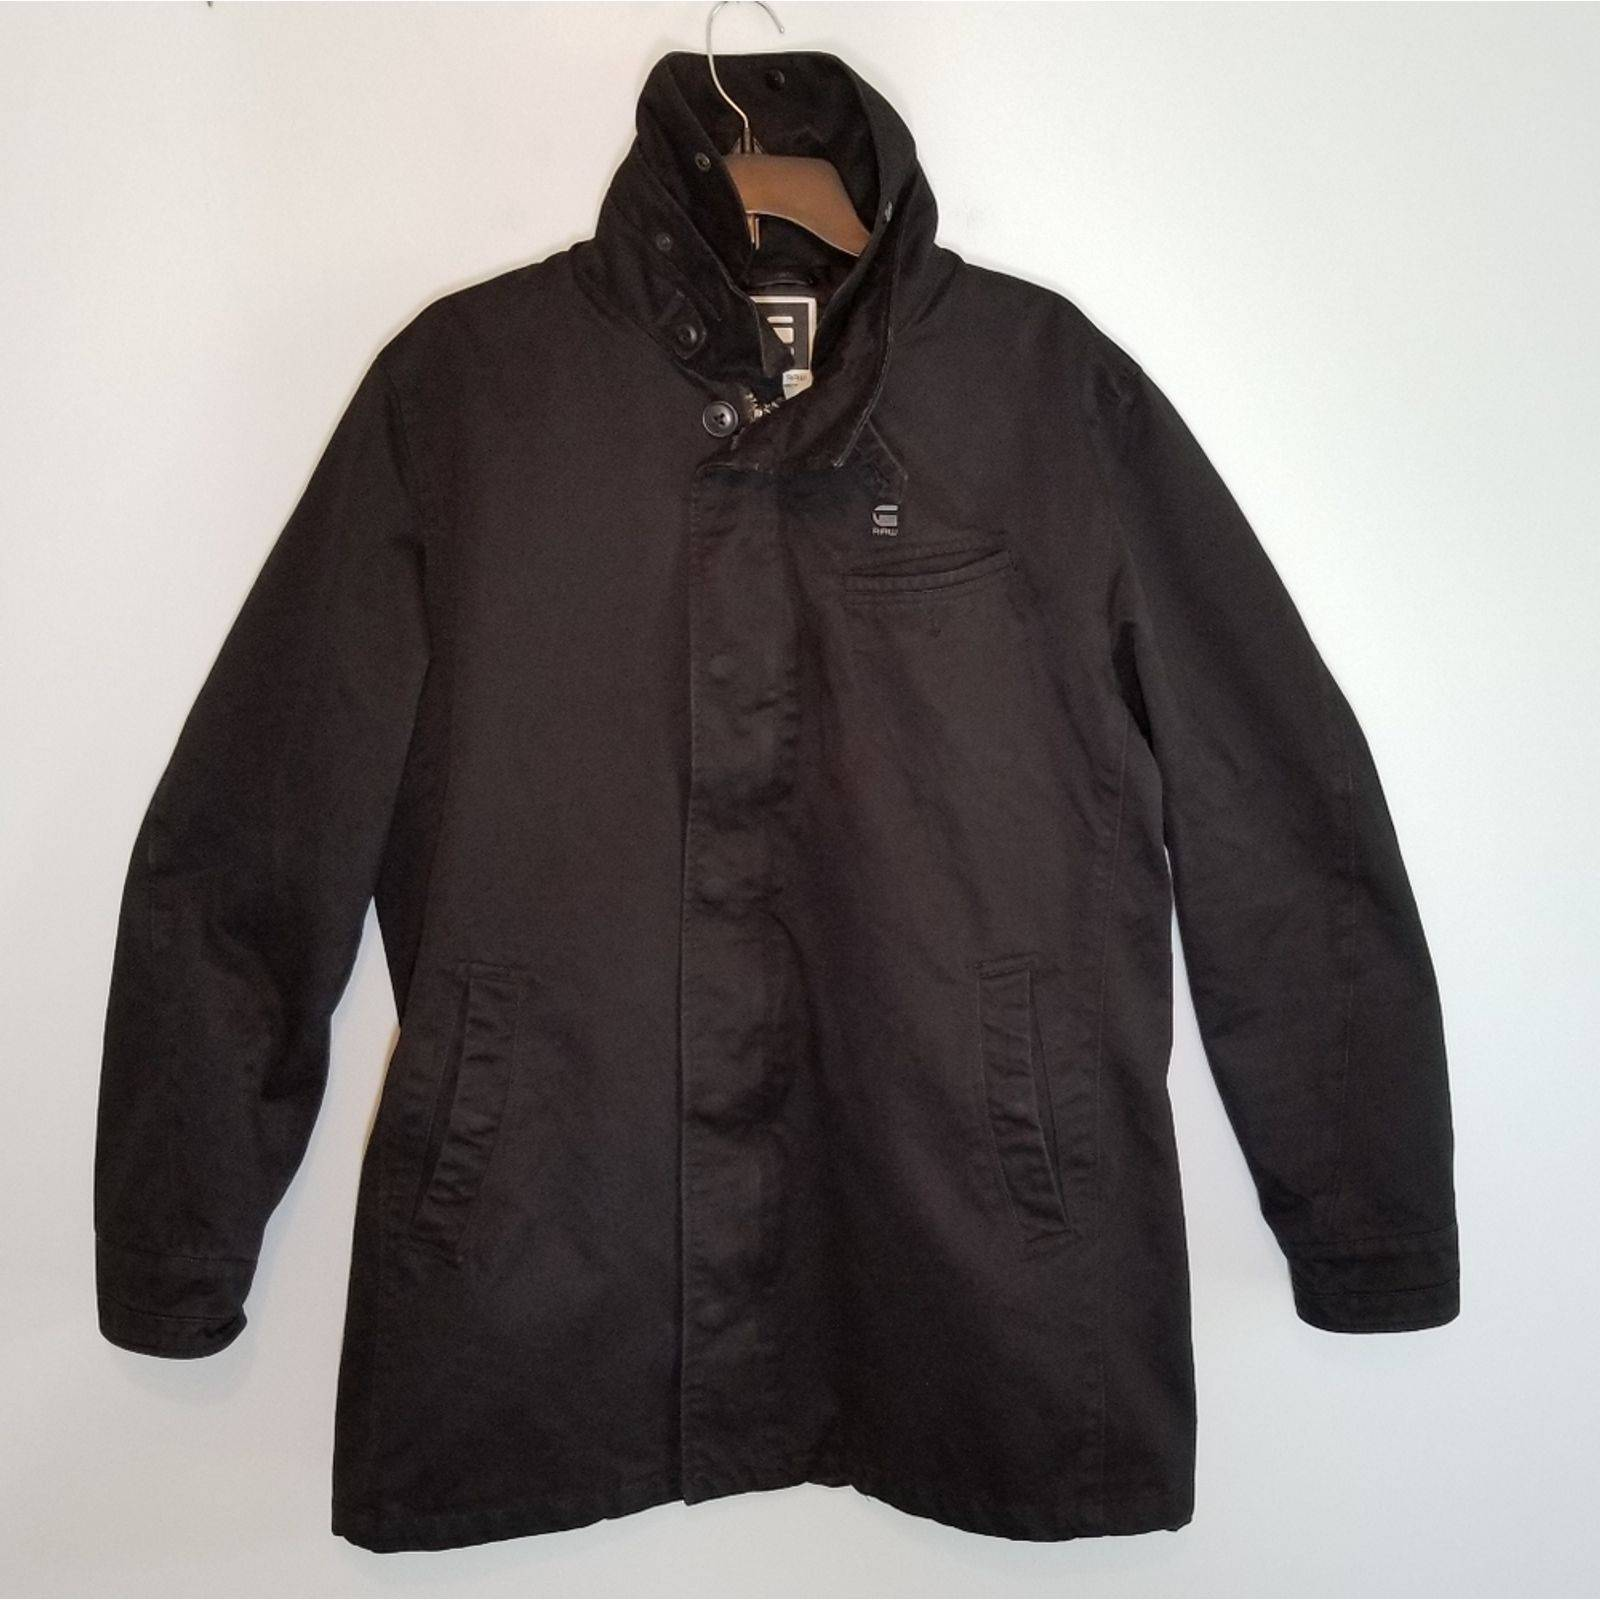 G-Star Raw jacket men's black size XXL